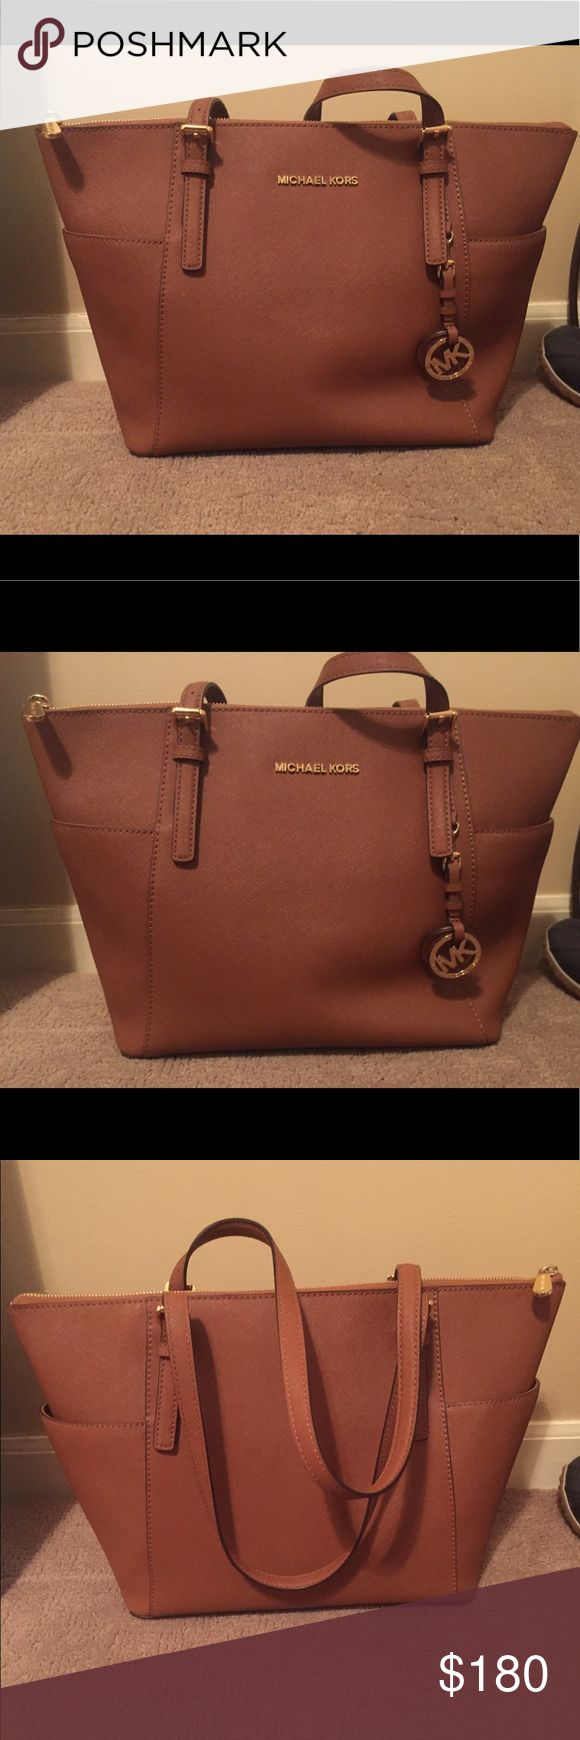 Michael Kors Jet Set Large Top Zip  Leather Tote Very good condition, only used once or twice, no scuff marks or stains or tears or rips. In the luggage color. Authentic from the Michael Kors store. Comes with dust bag. Michael Kors Bags Totes